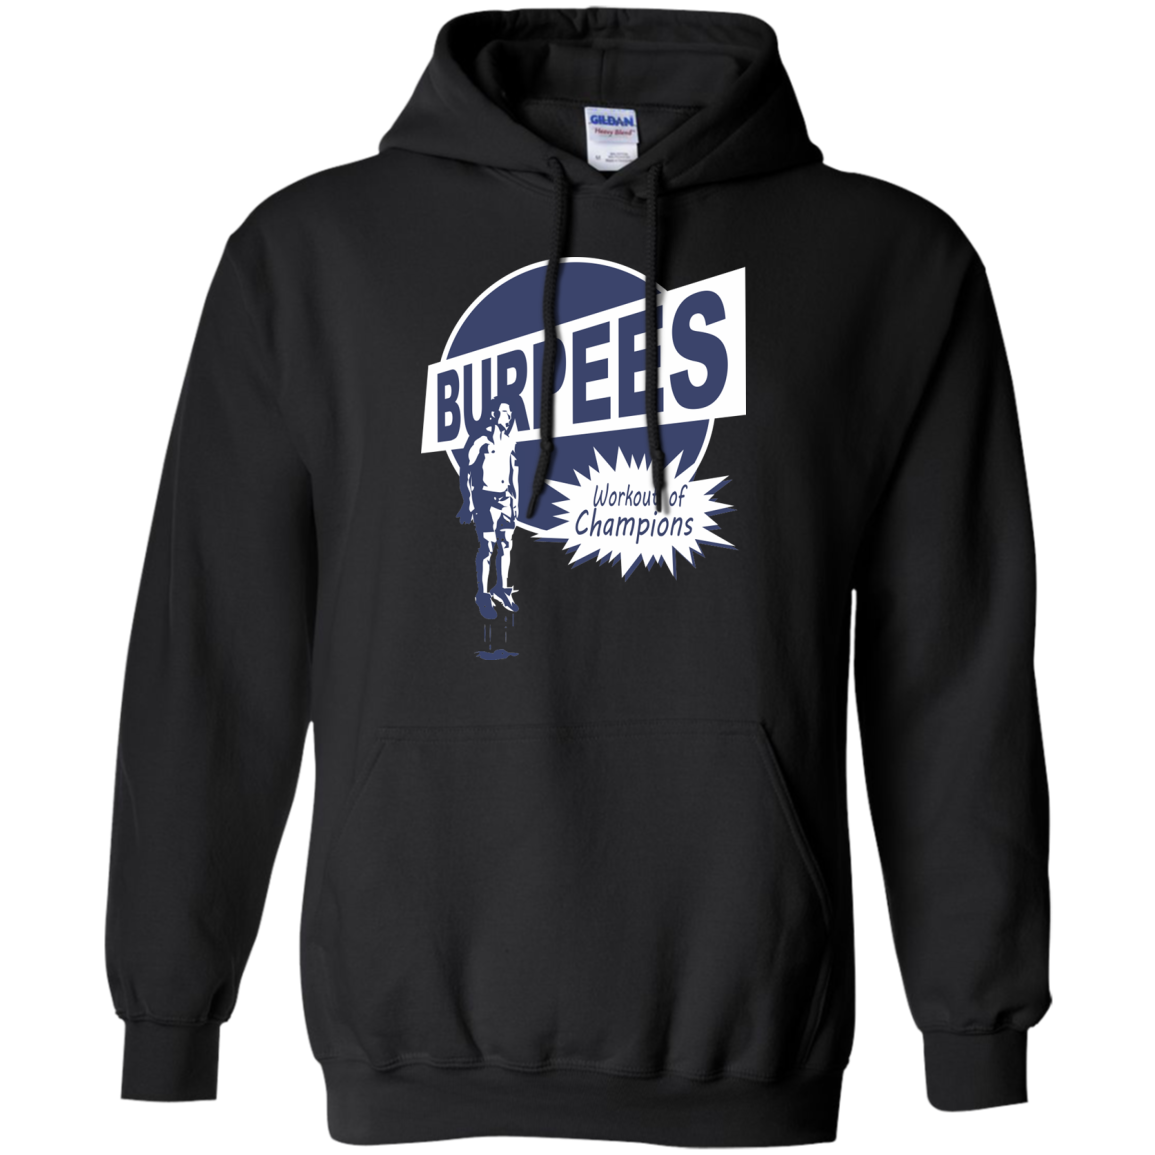 Burpees T-Shirts Hoodies Burpees Workout Of Champions - Blue Fox